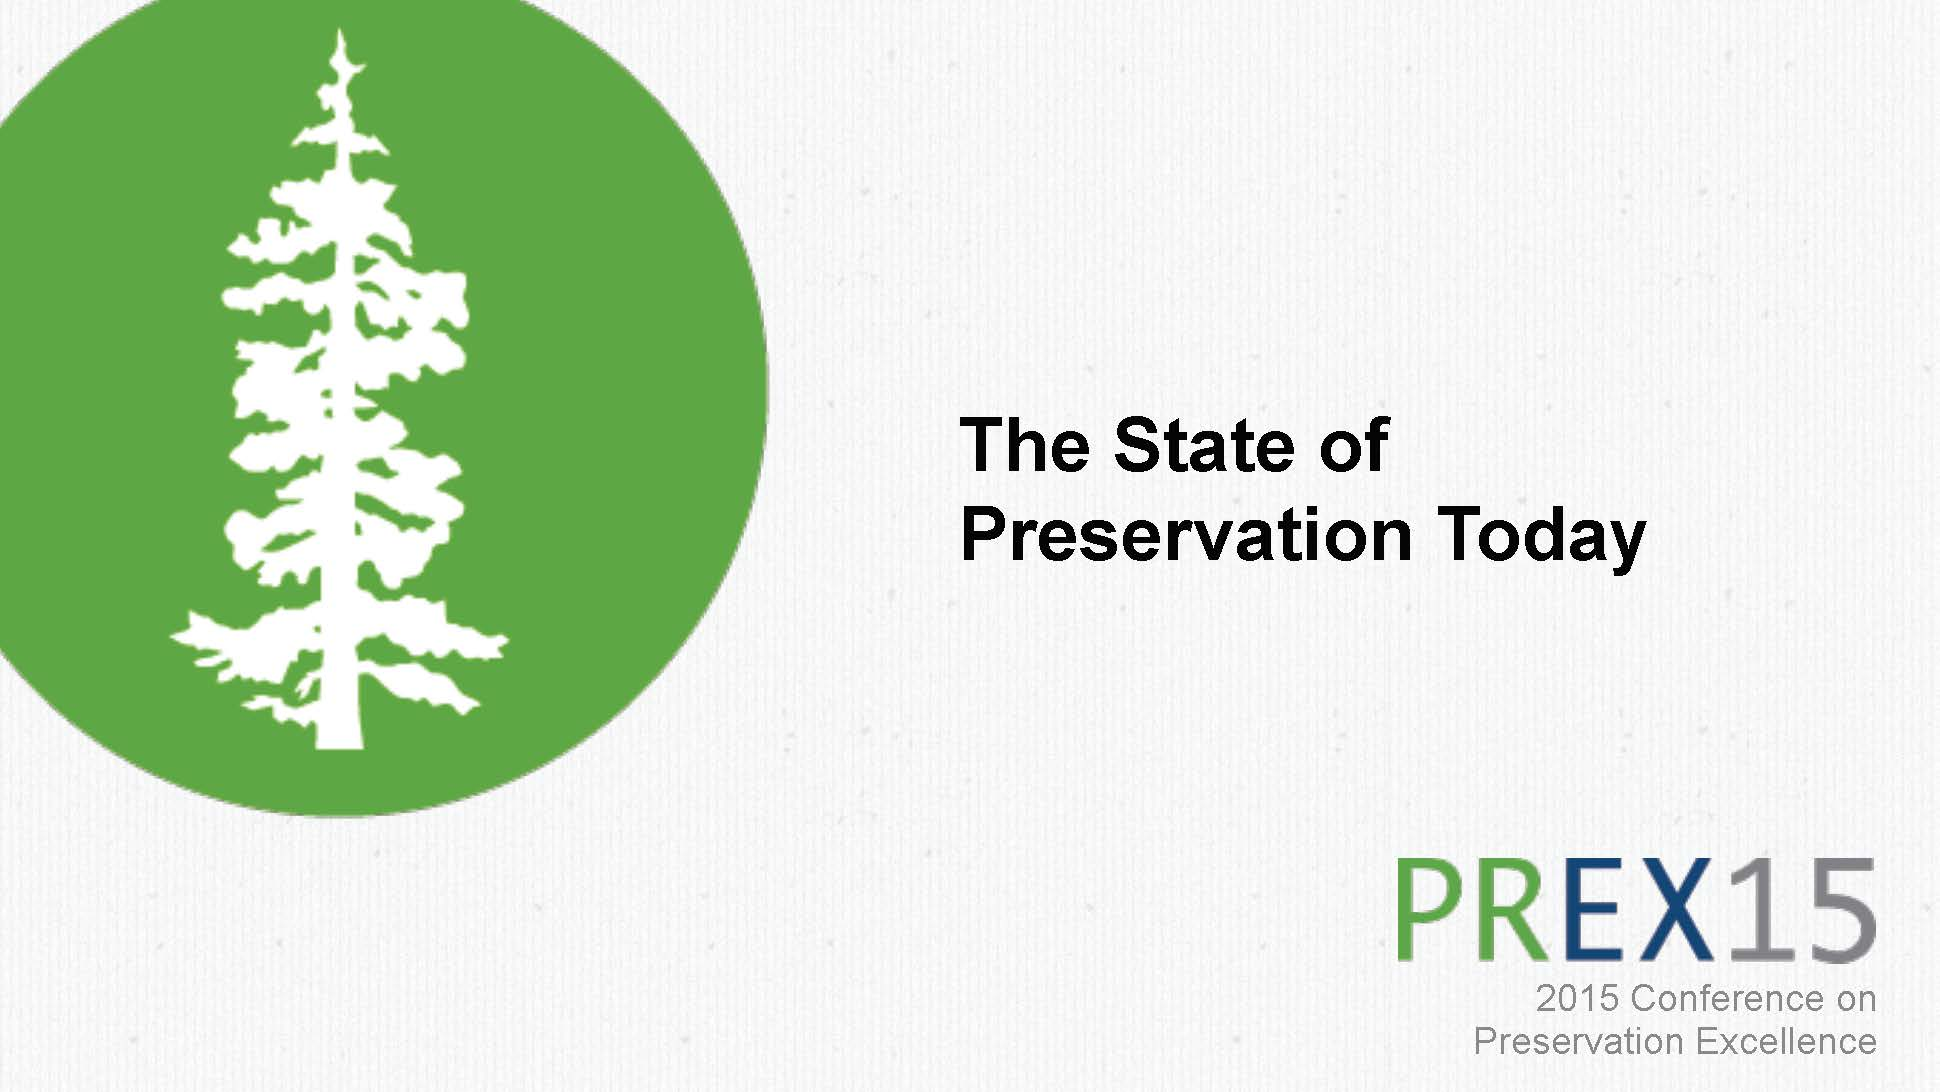 State of Preservation Today